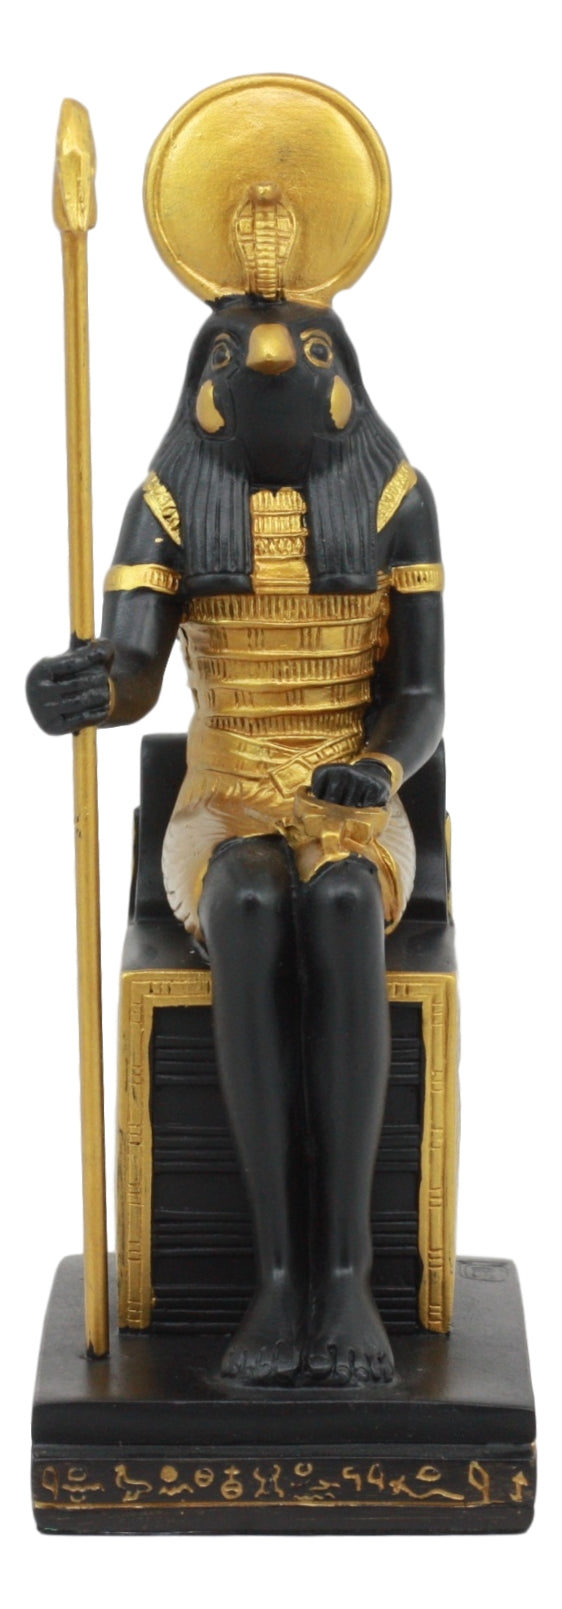 Ebros Classical Egyptian Gods and Goddesses Seated On Throne Statue Gods of Egypt Ruler of Mankind Decorative Figurine … (Horus God of The Sky)